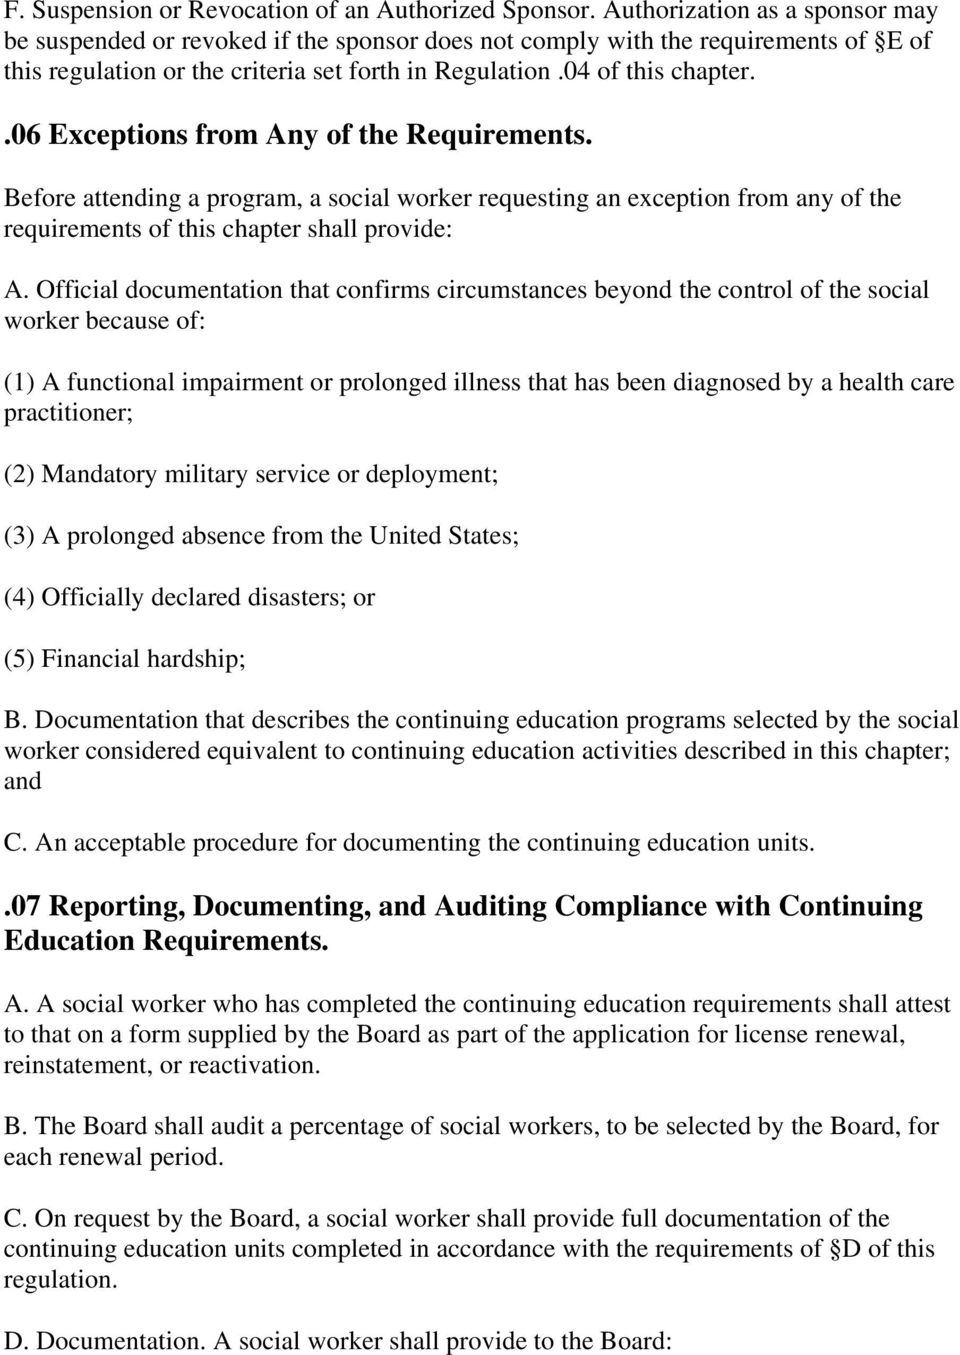 .06 Exceptions from Any of the Requirements. Before attending a program, a social worker requesting an exception from any of the requirements of this chapter shall provide: A.